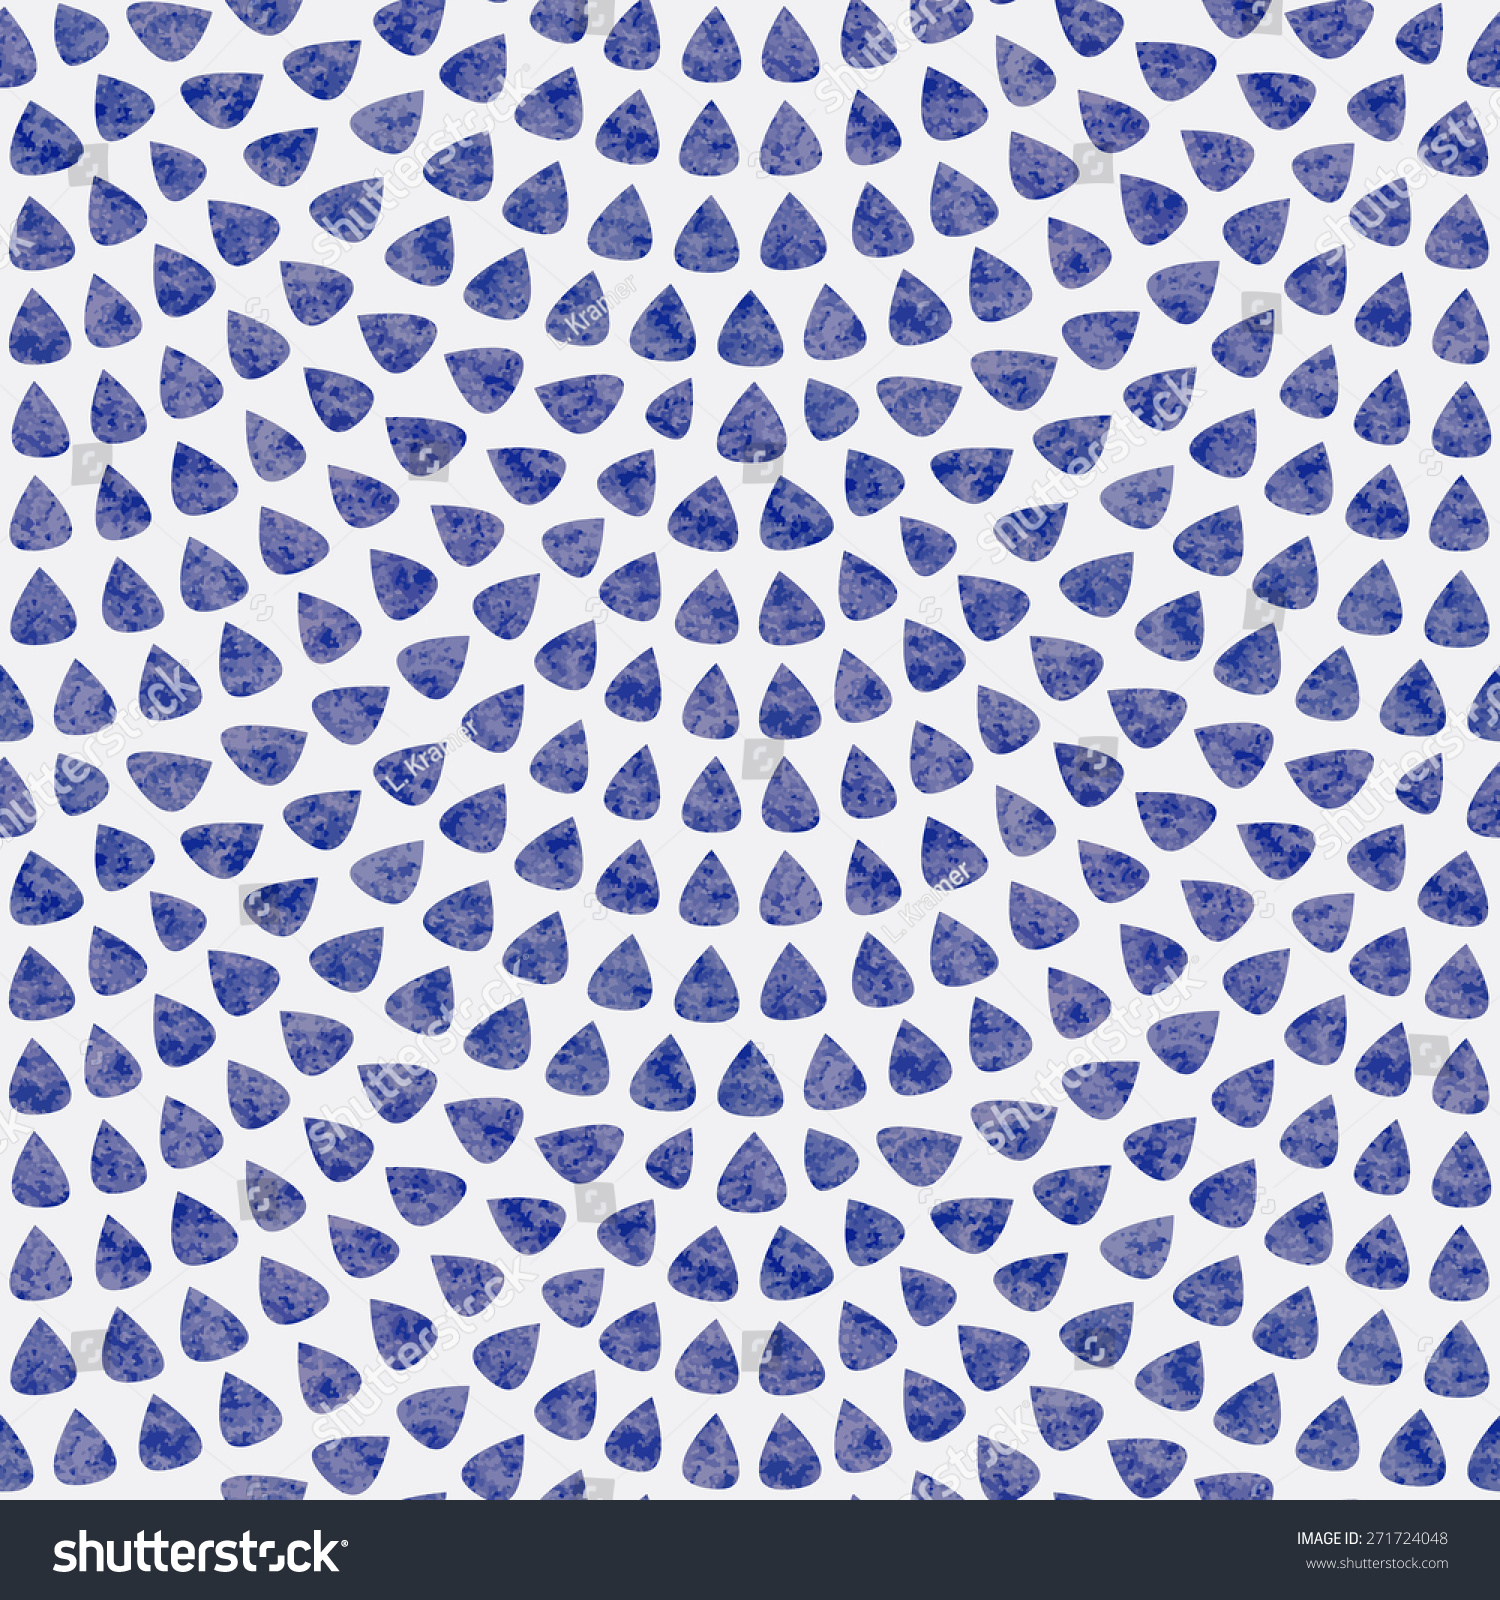 Vector Seamless Pattern Fish Scale Layout 271724048 further 1950s Modern Home Interior besides Transitional Gallery Room Built For A Primitive Artwork Collection together with Top 5 Luxury Villas in addition Royalty Free Stock Photos Havana Cuba Interior Courtyard Ms Spanish Colonial Building Old Featuring Potted Plants Furniture Image40162588. on art deco interior design elements